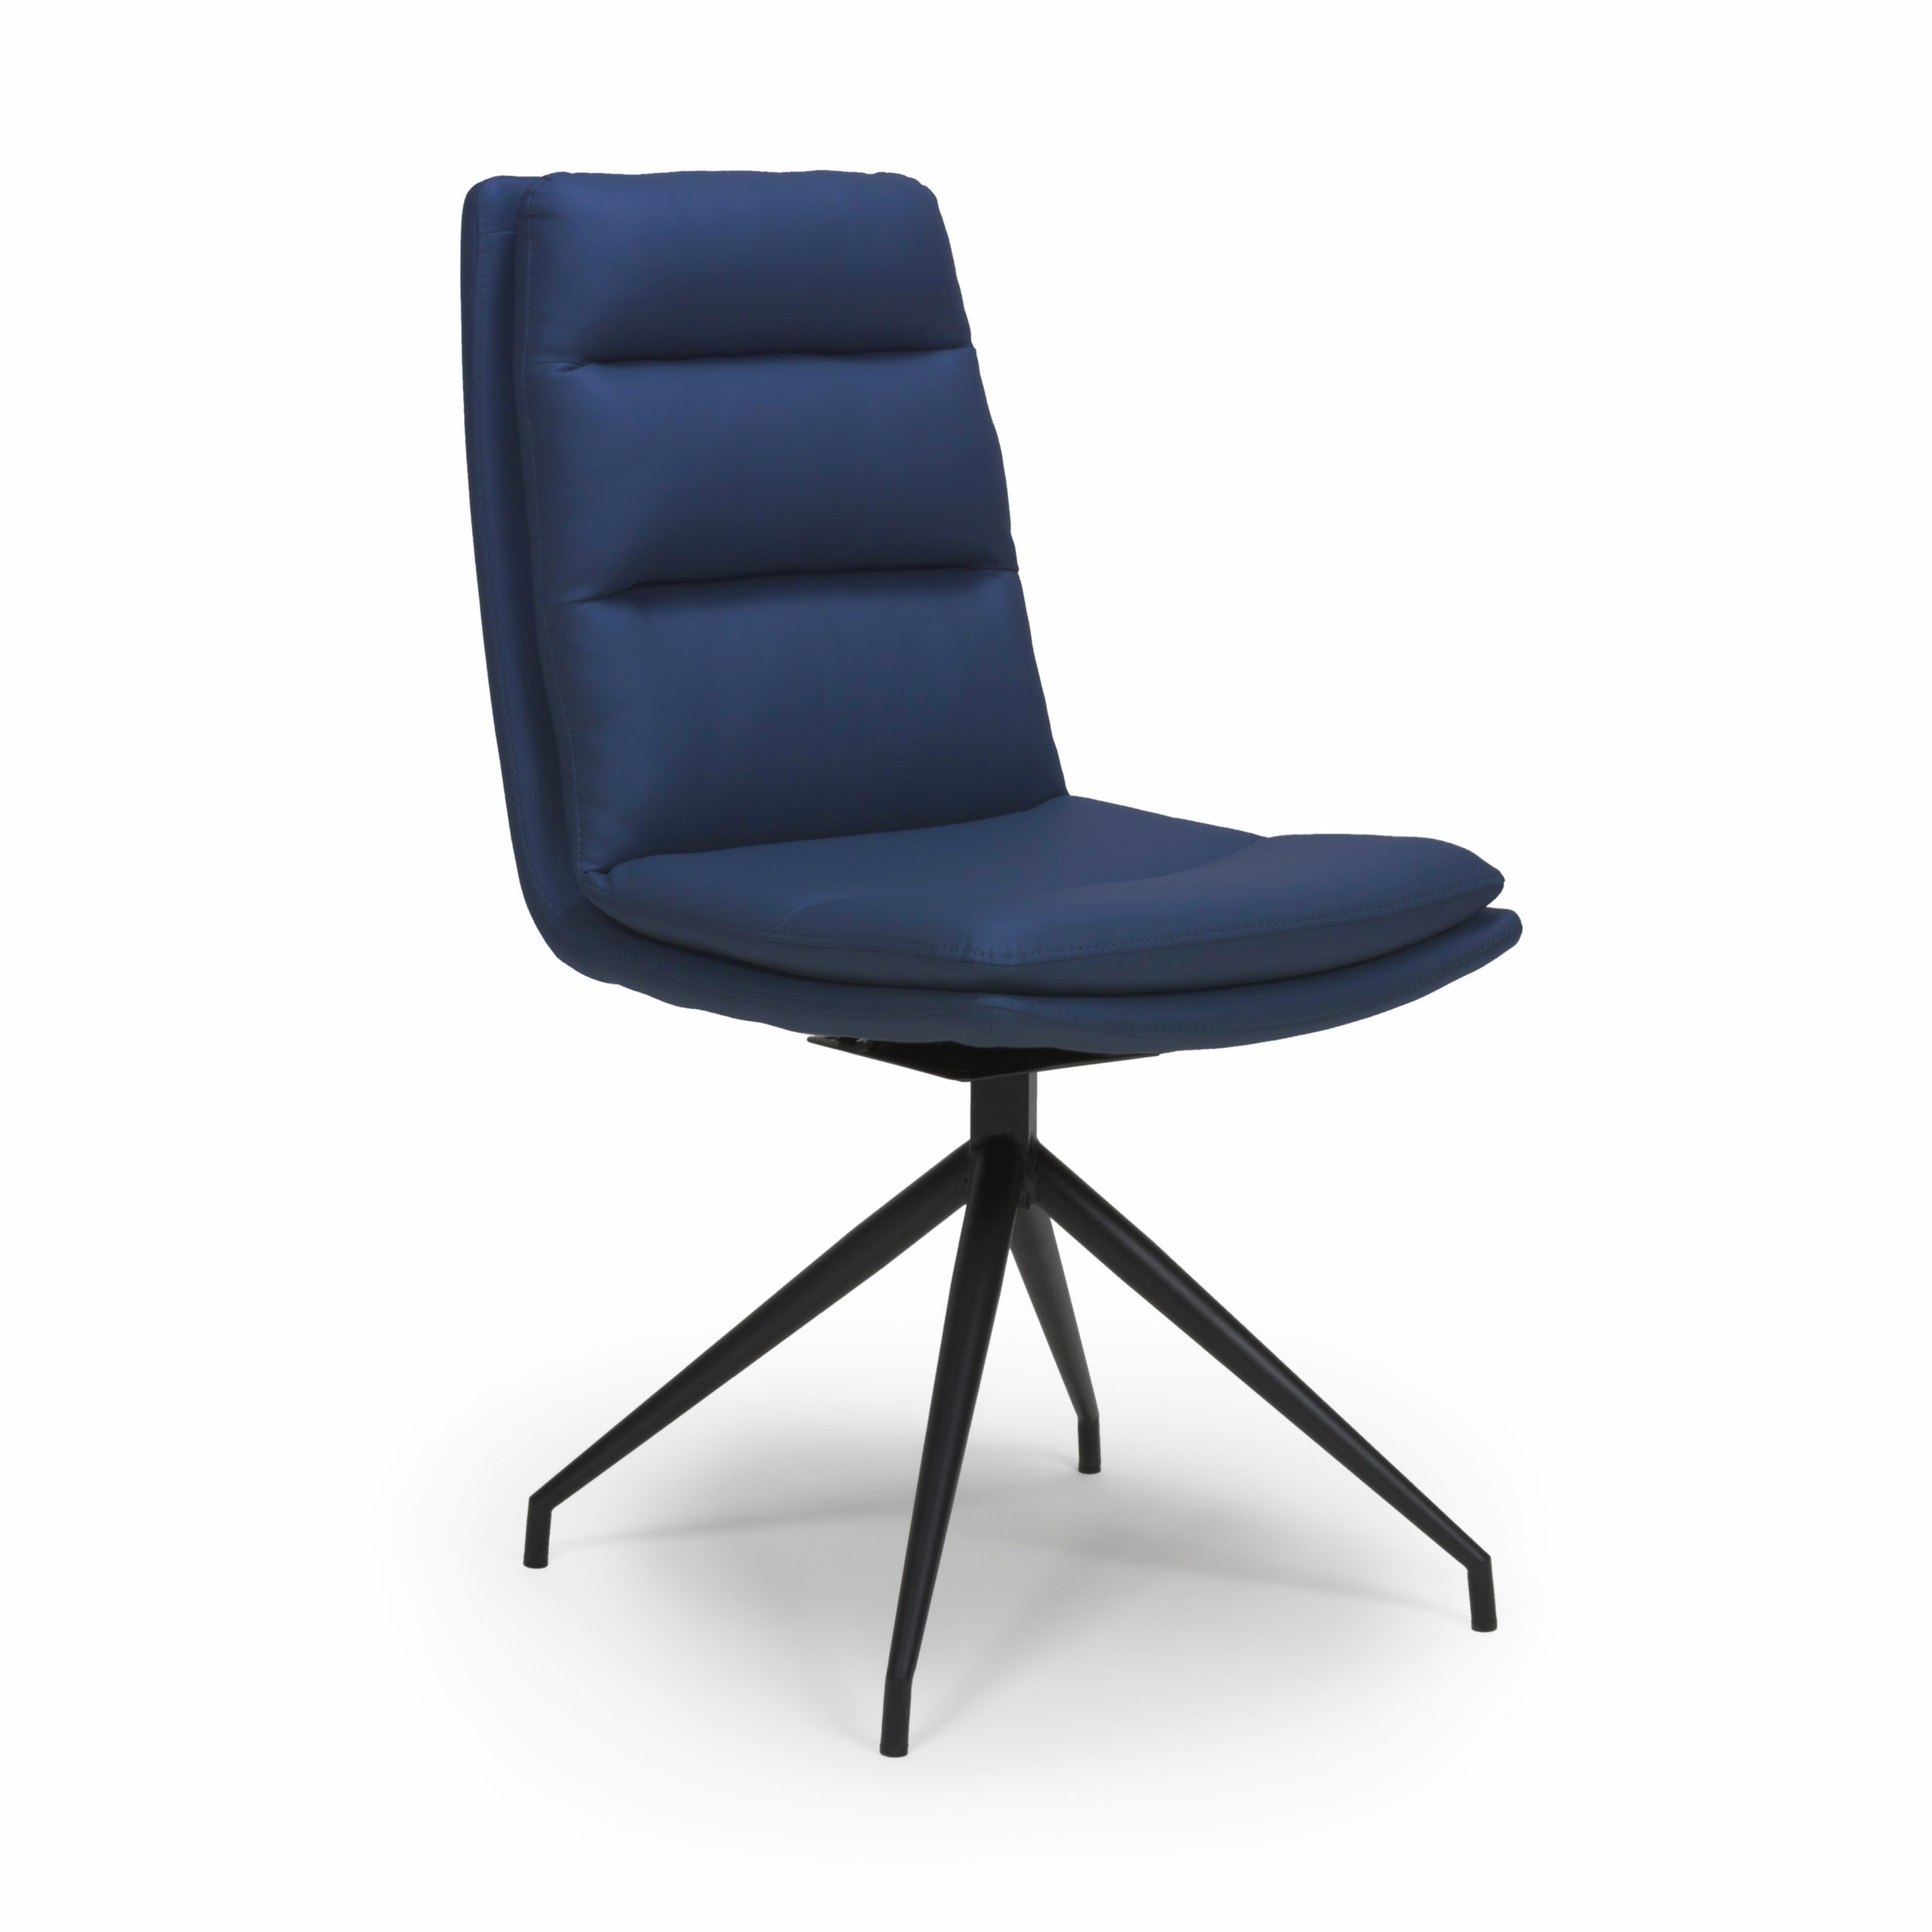 Dallas Blue leather dining chair